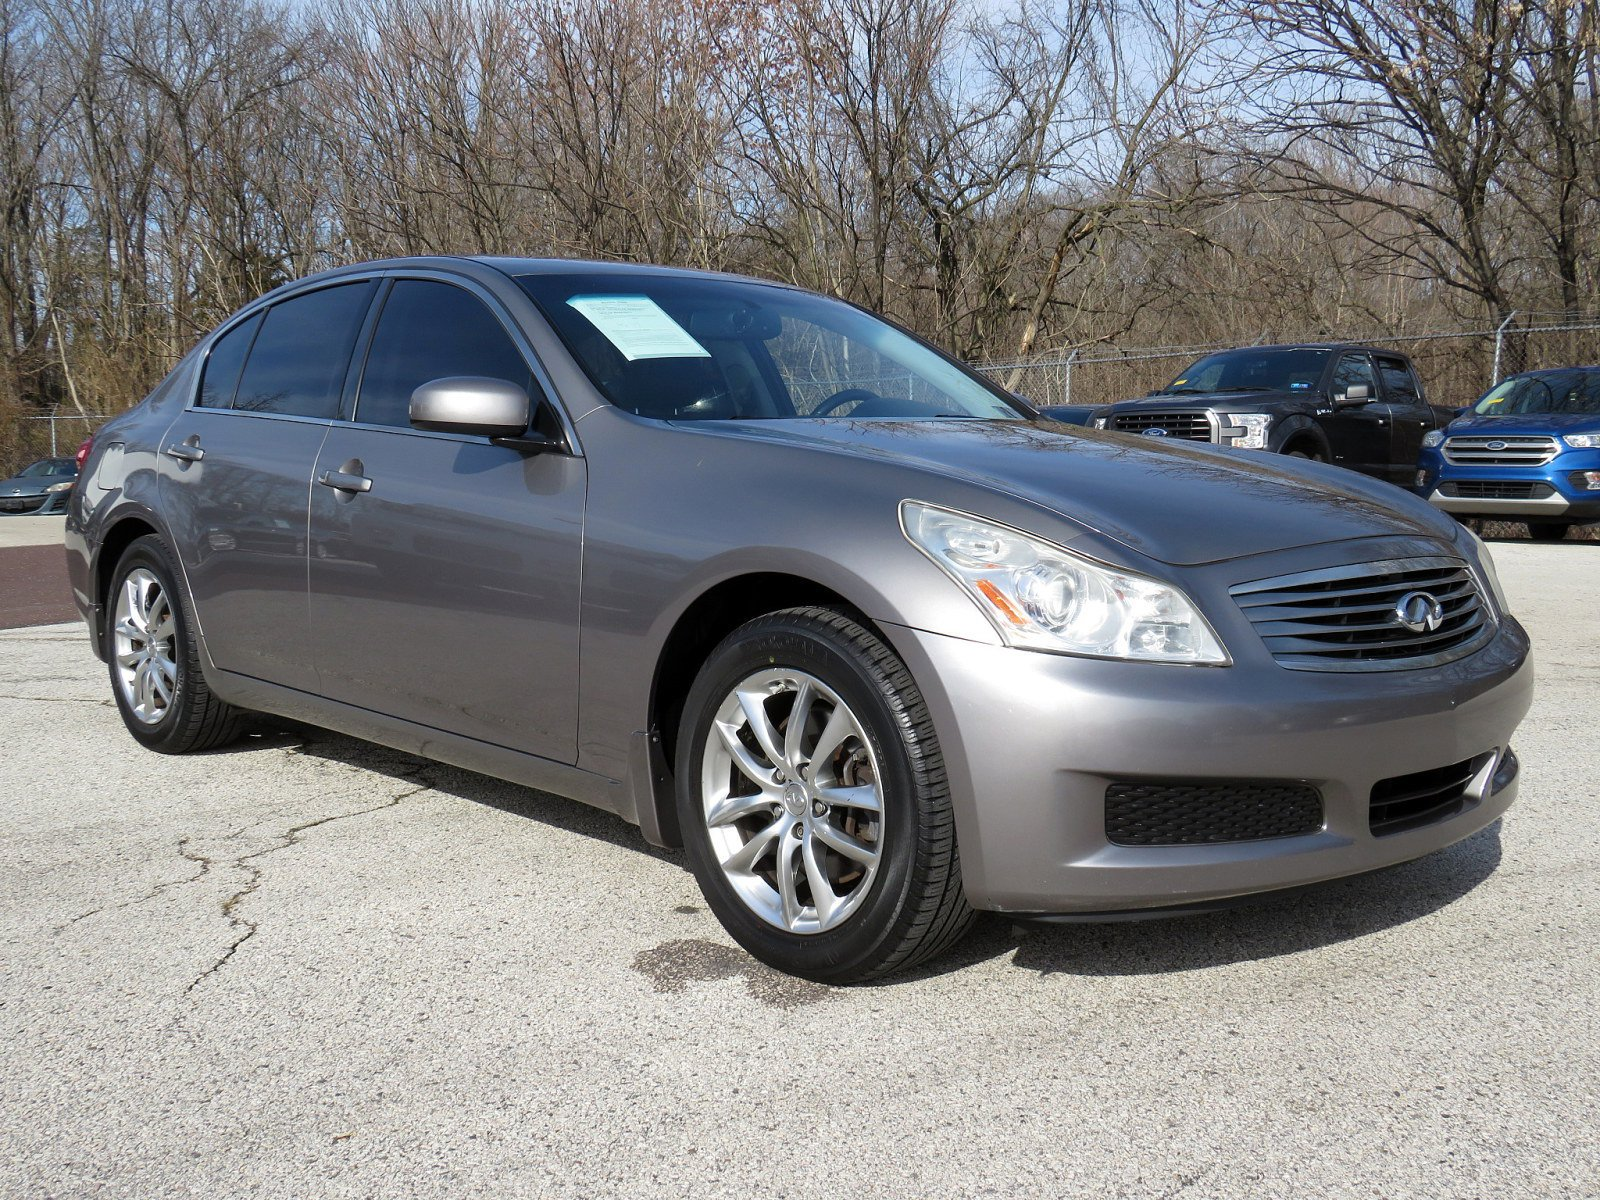 Infiniti G35 Coupe For Sale Craigslist Nj - Cars Trend Today